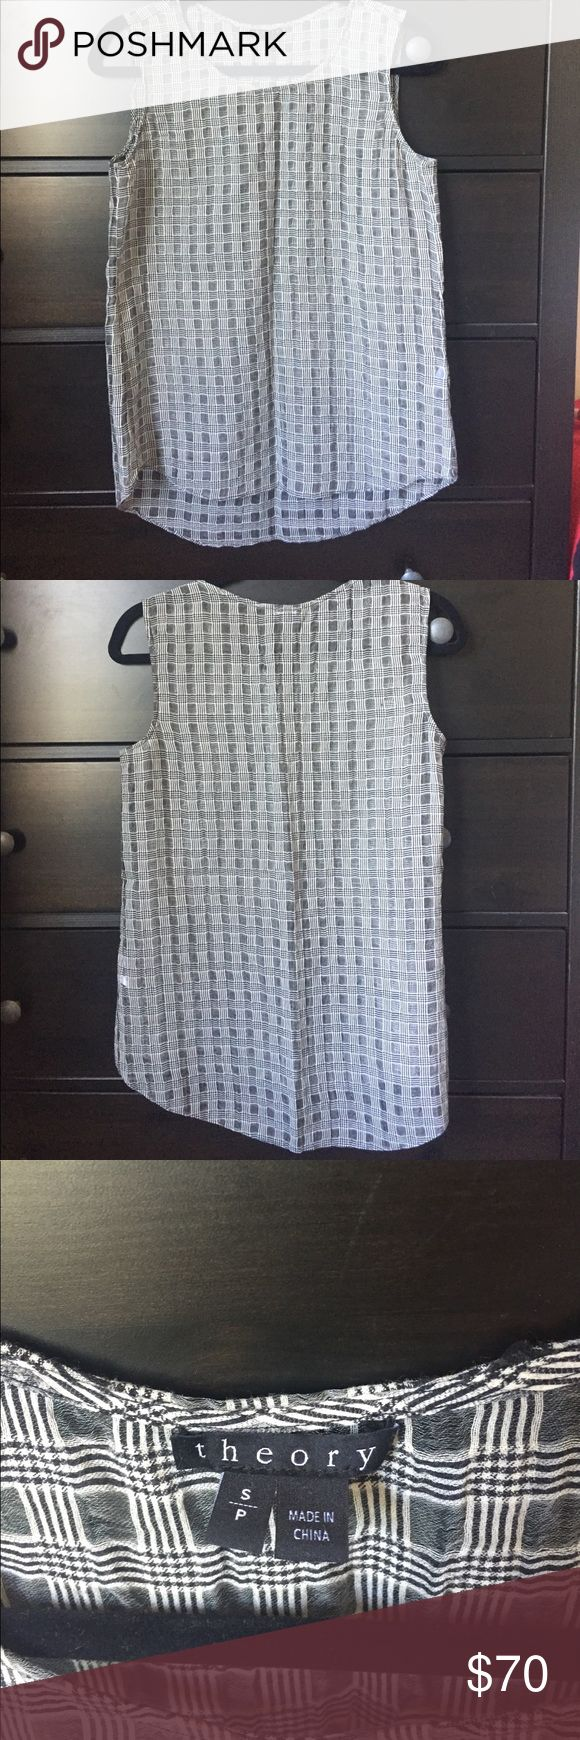 Theory Bringa Filleo Shirt Never worn Theory tank top. It is a black/white checkered pattern. It is also sheer- which is why I never wore it. Would go great with a black tank top under it. Theory Tops Tank Tops